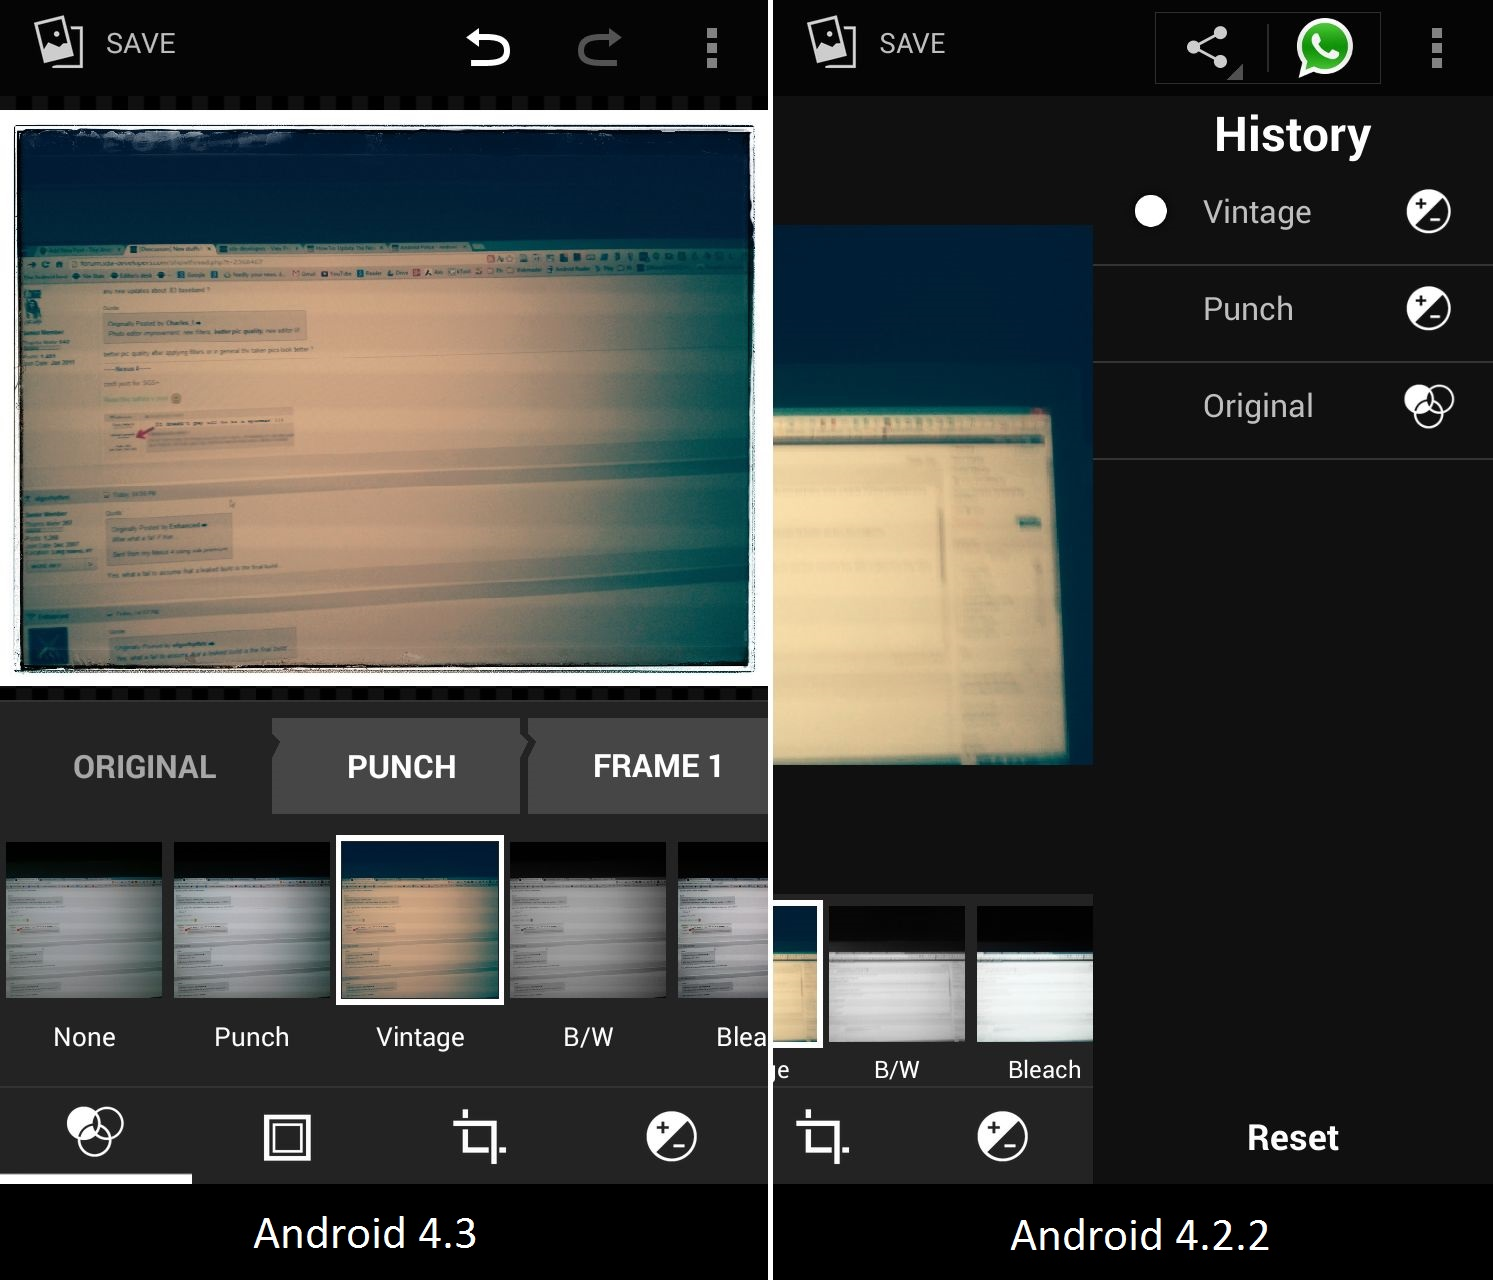 Android 4.3 Photo Editor